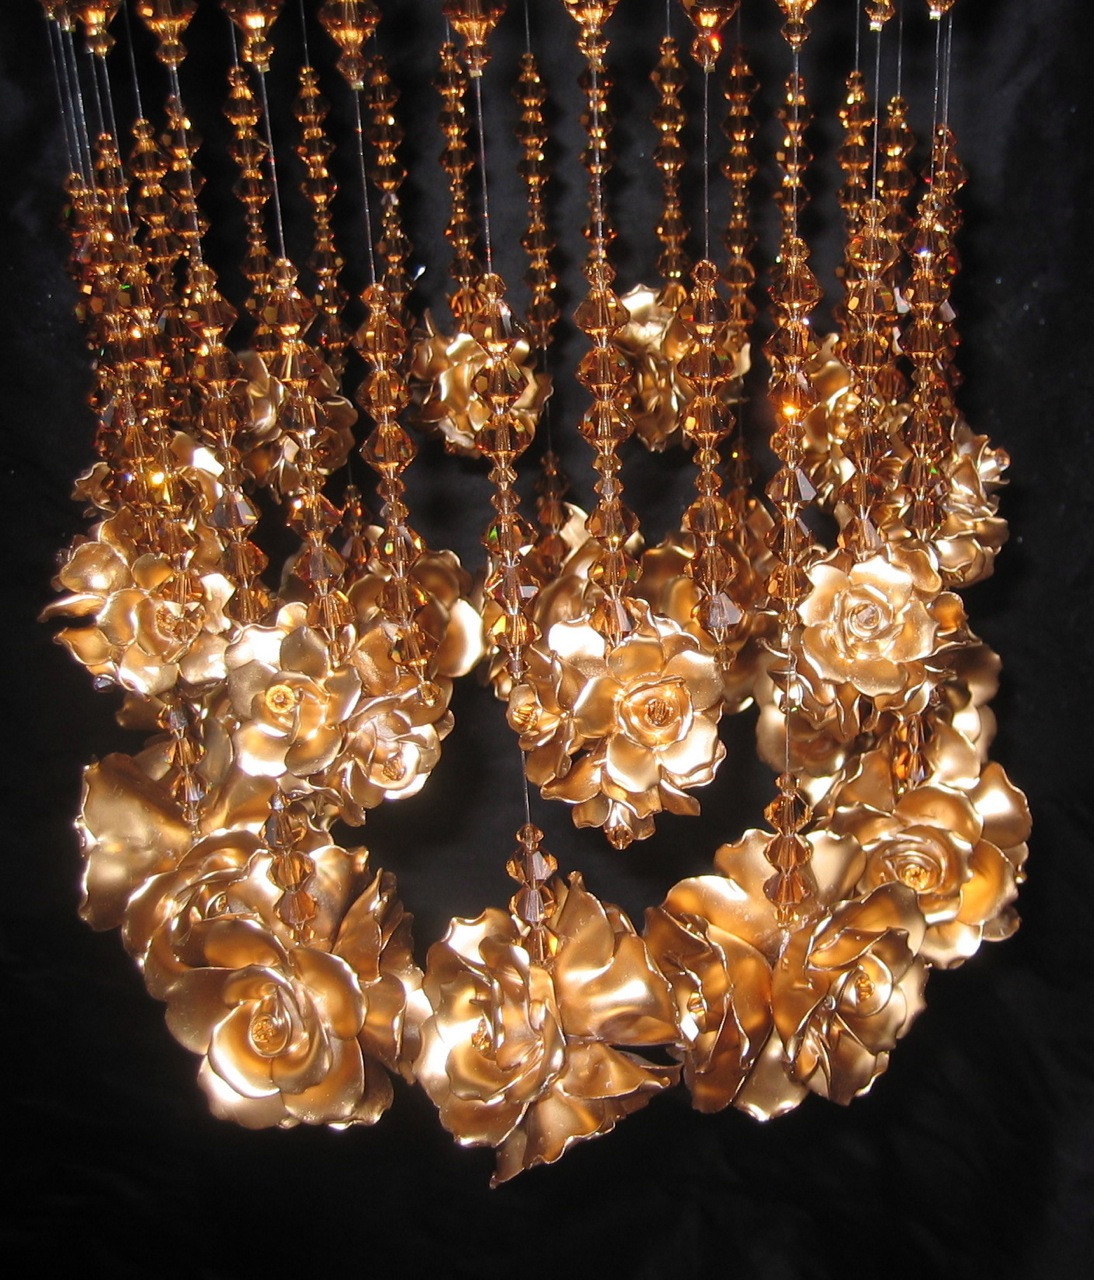 RAINDROPS AND ROSES CHANDELIER IN GOLDEN ROSE DETAIL